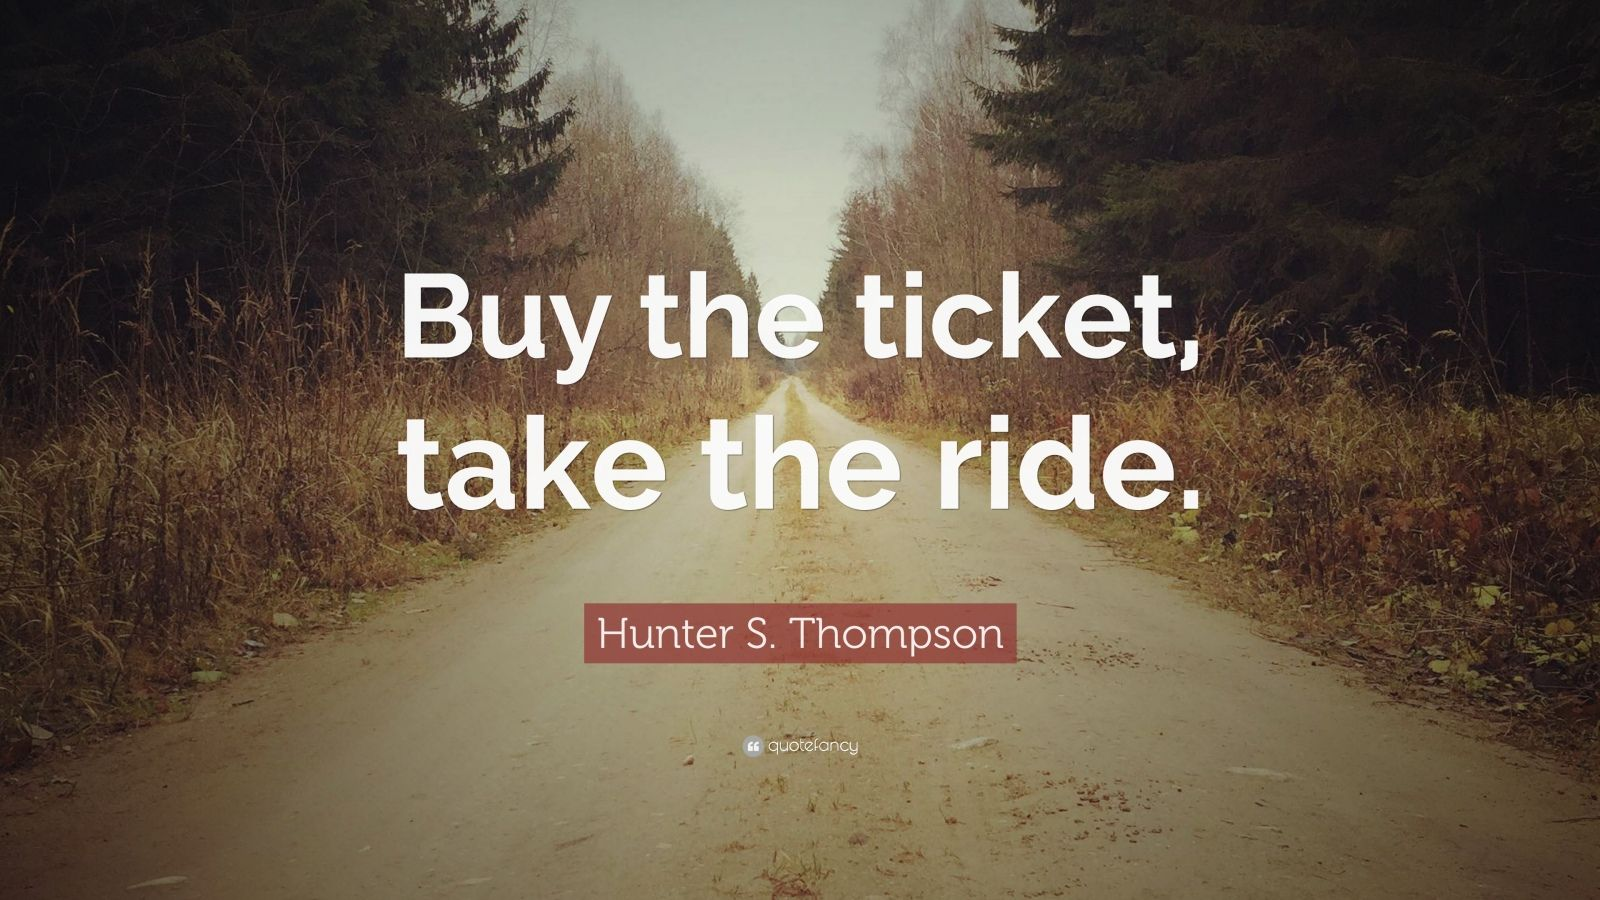 Mission Trip Quote Wallpaper Hunter S Thompson Quote Buy The Ticket Take The Ride